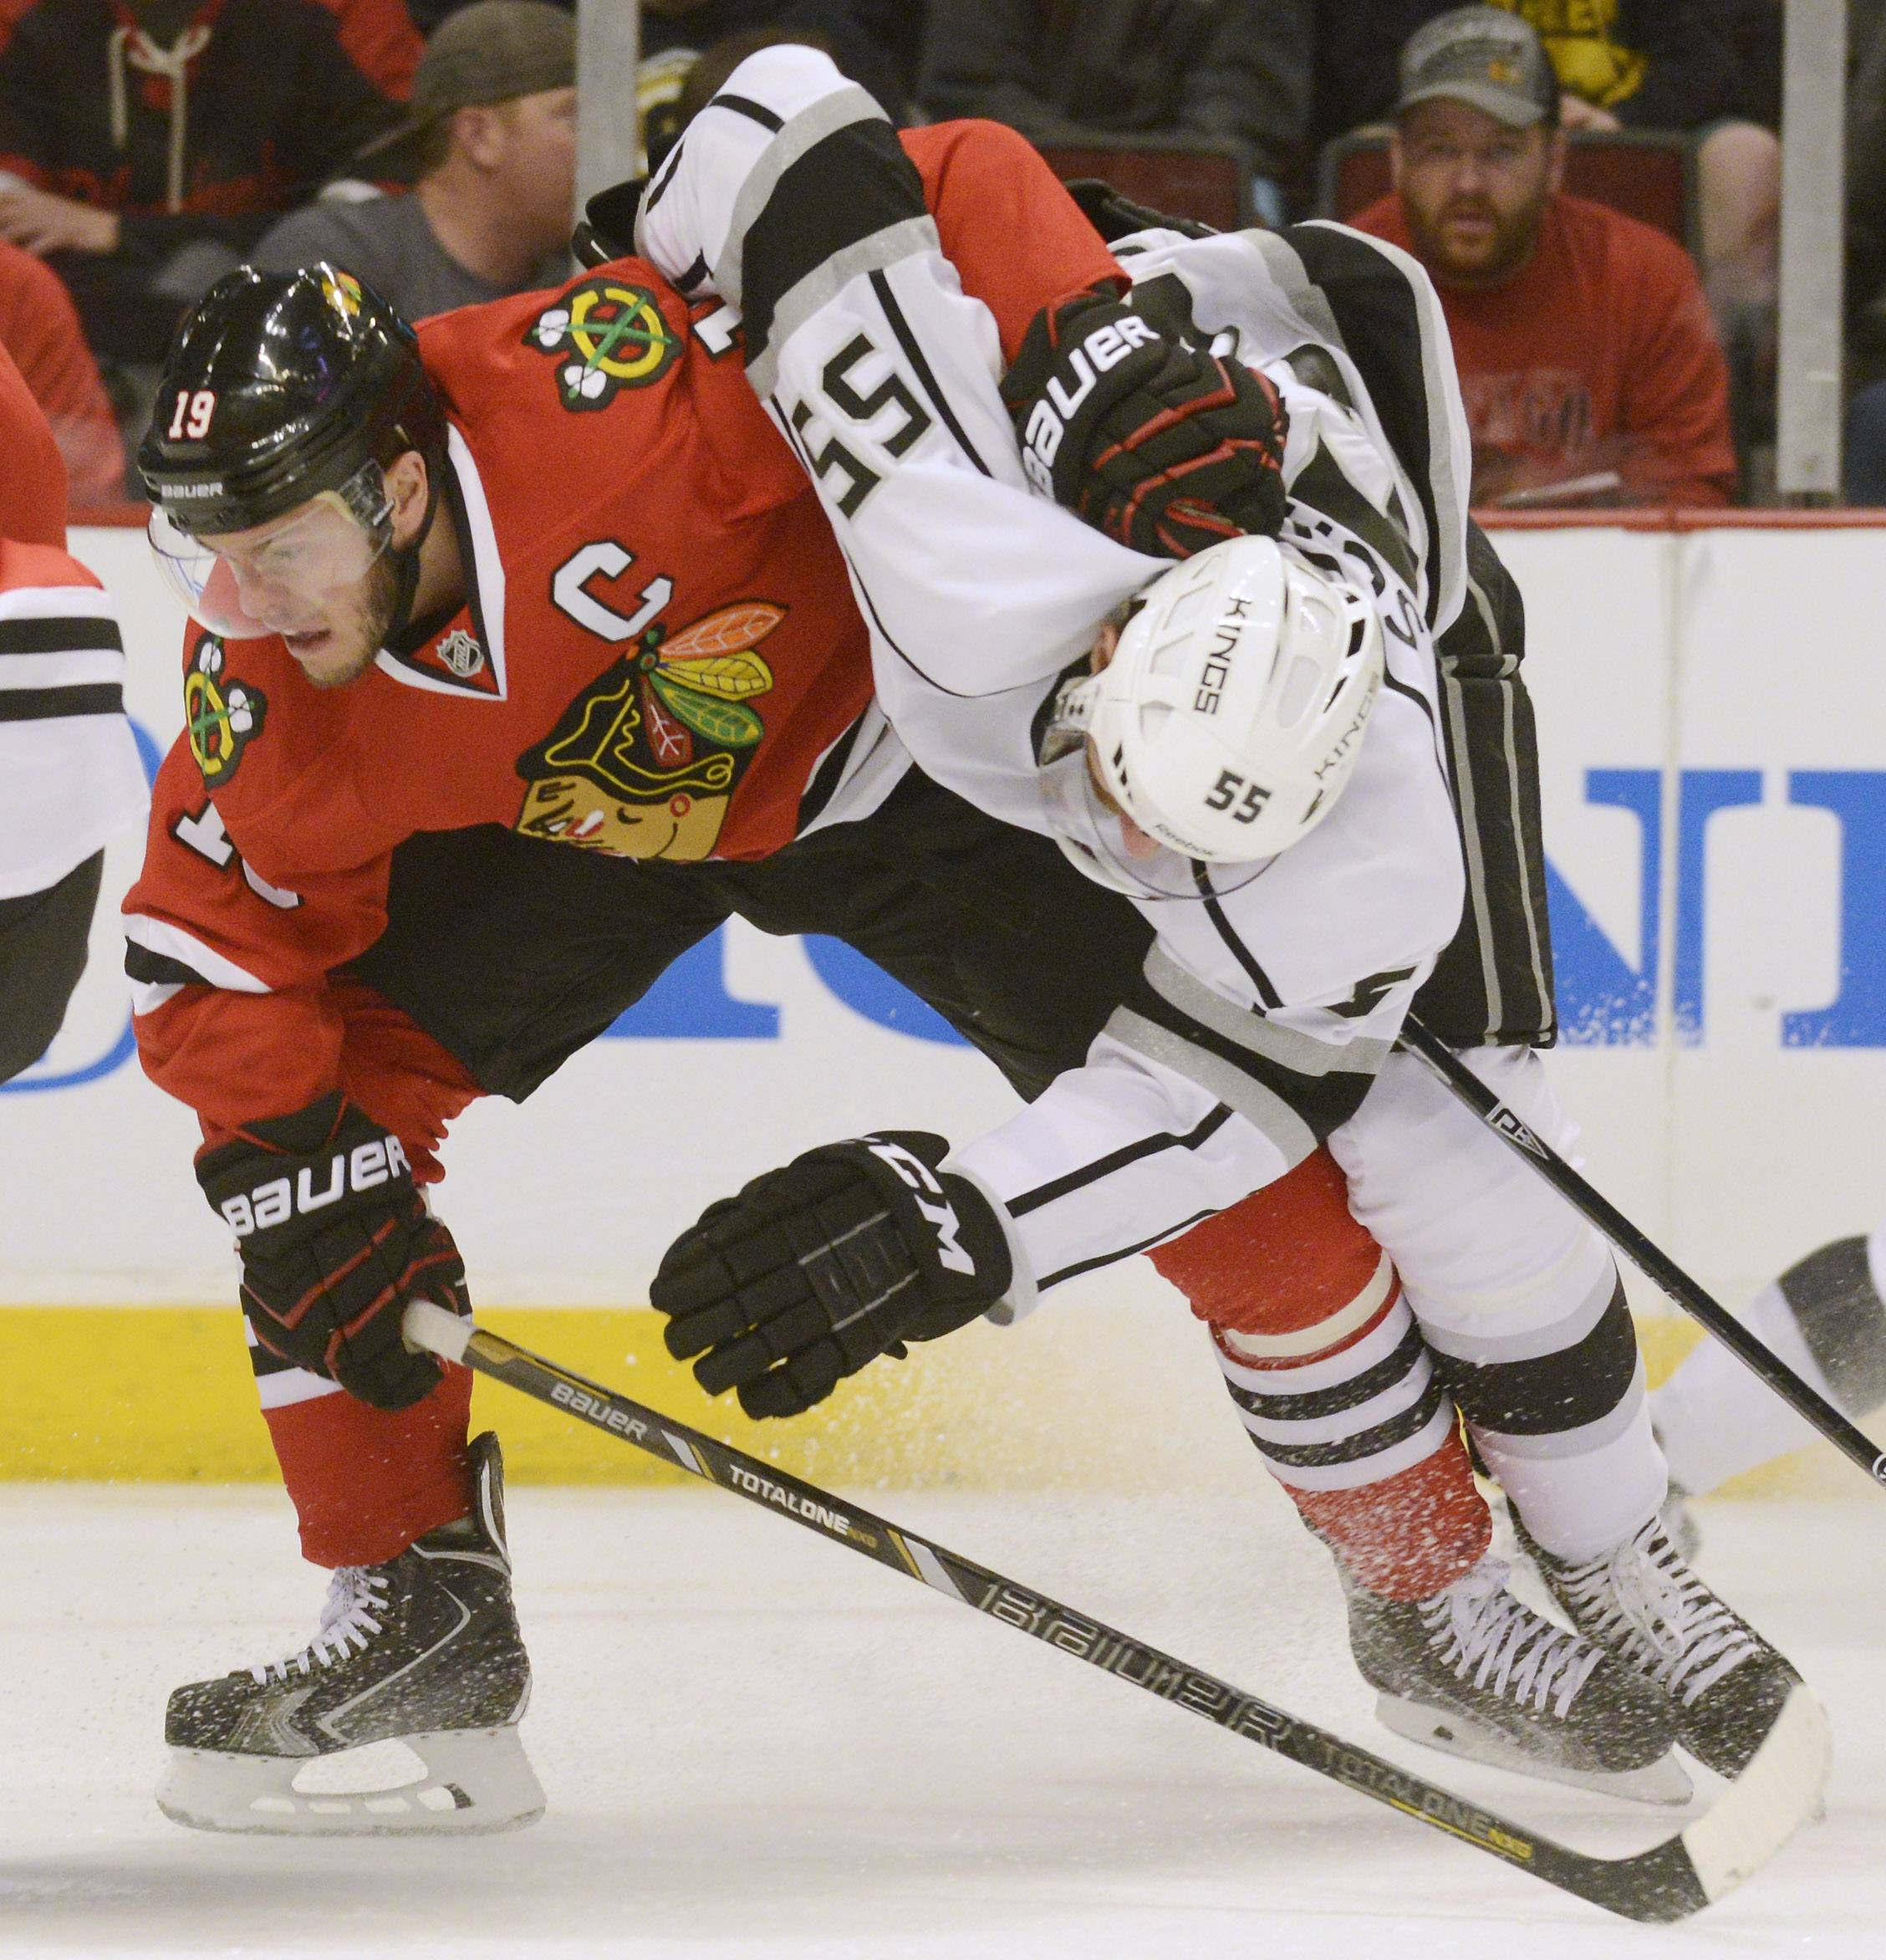 Chicago Blackhawks center Jonathan Toews, left, and Los Angeles Kings defenseman Jeff Schultz take one another down to the ice on a play during Sunday's game at the United Center in Chicago.